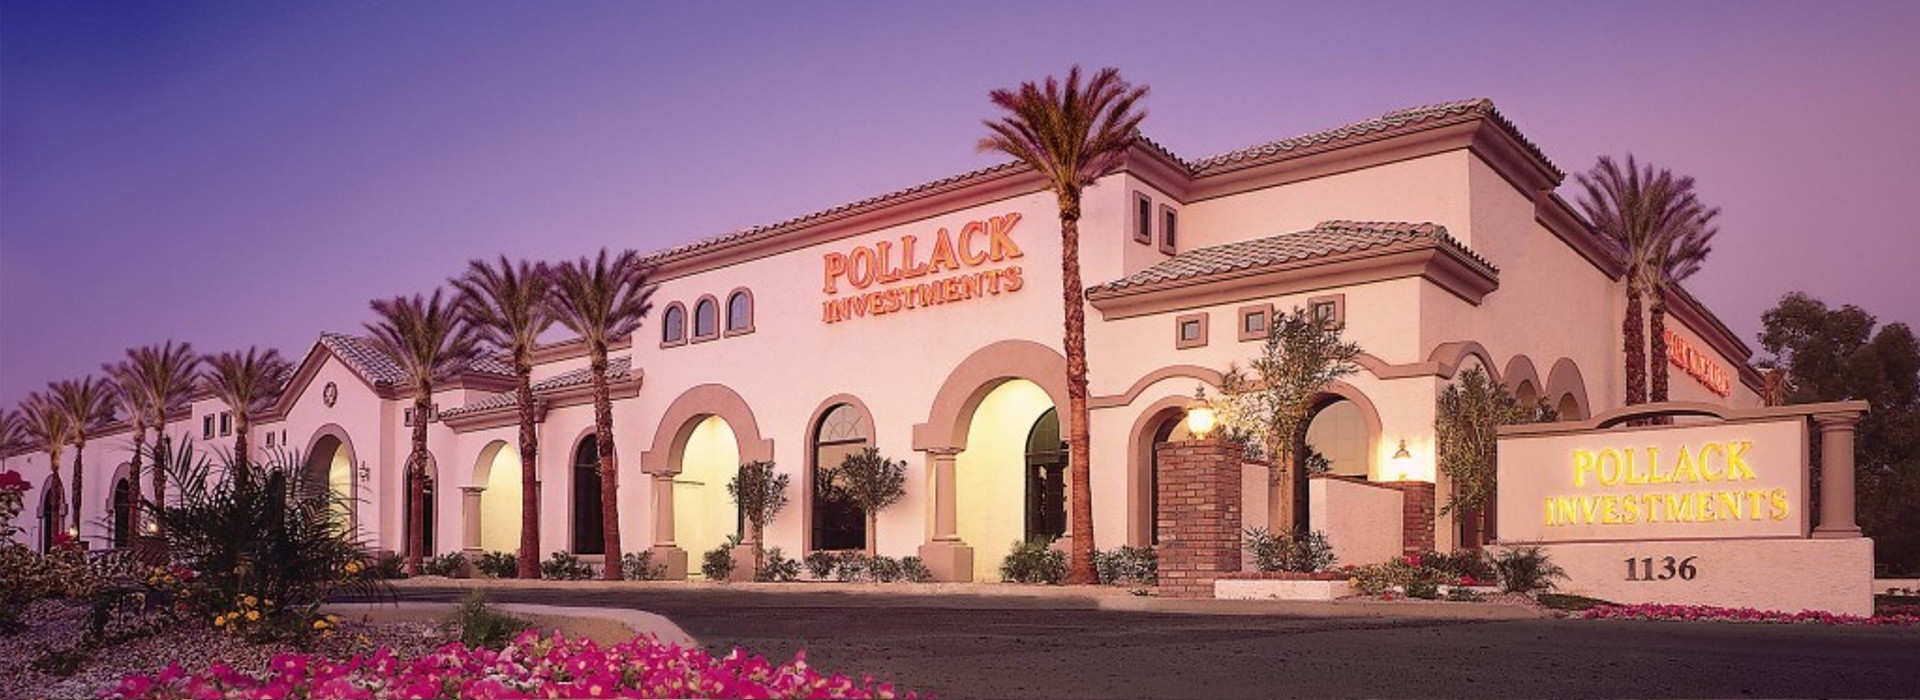 Michael A. Pollack <br /> Real Estate Investments <small>Involved in Redeveloping more than 10,000,000 SF</small>